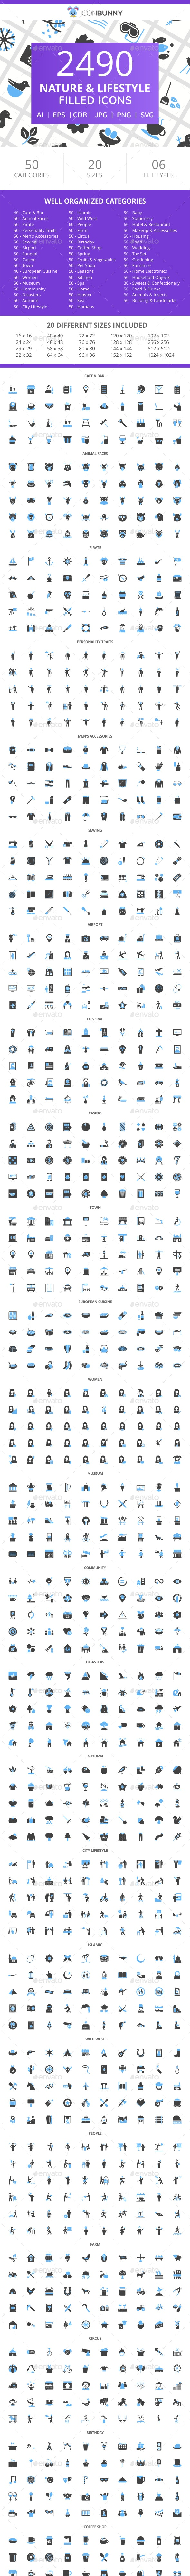 2490 Nature & Lifestyle Filled Blue & Black Icons - Icons